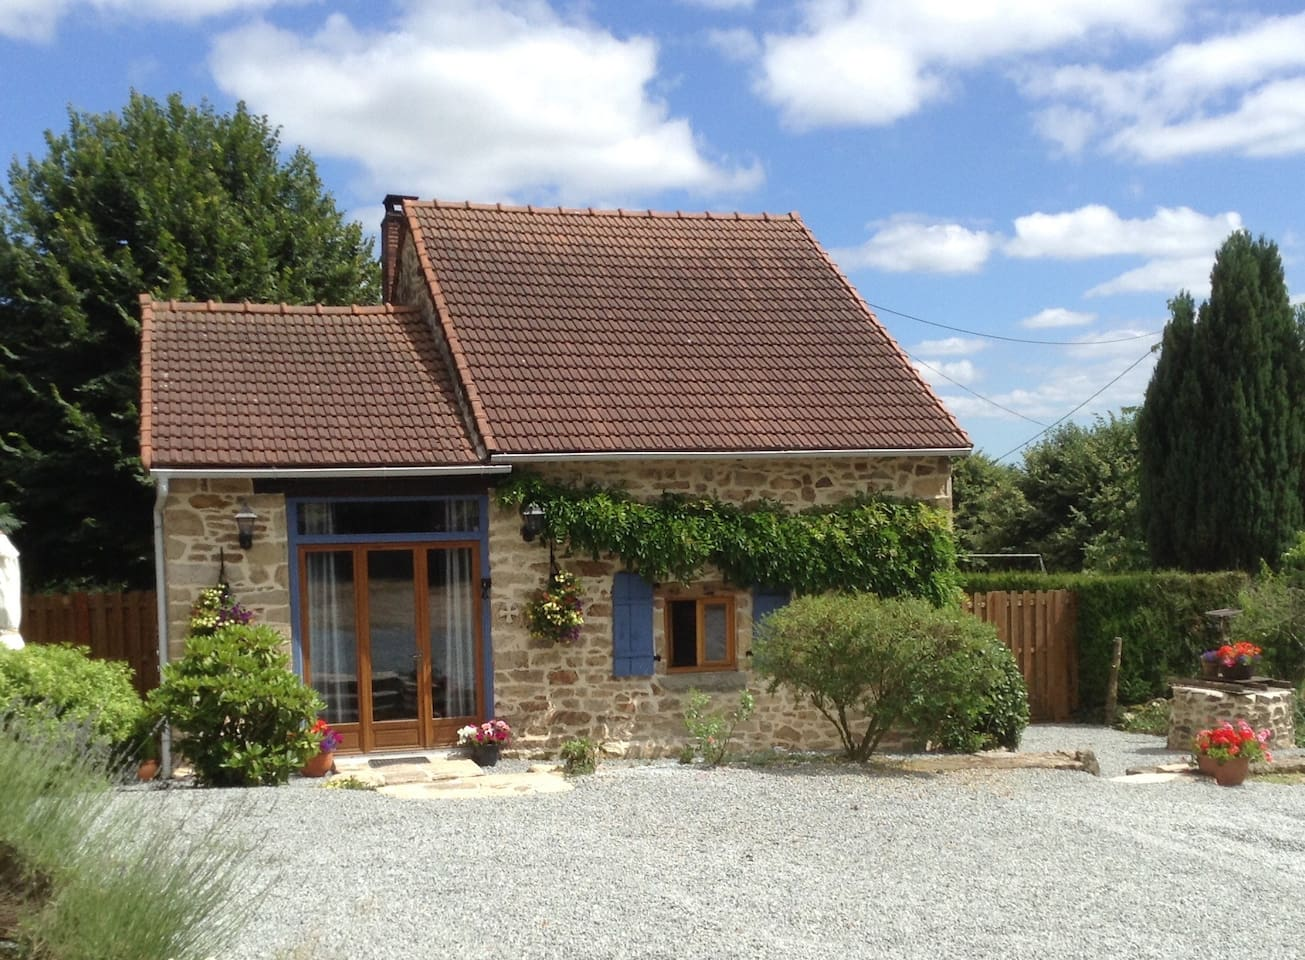 Pretty cottage in tranquil surroundings close to A20 and N145